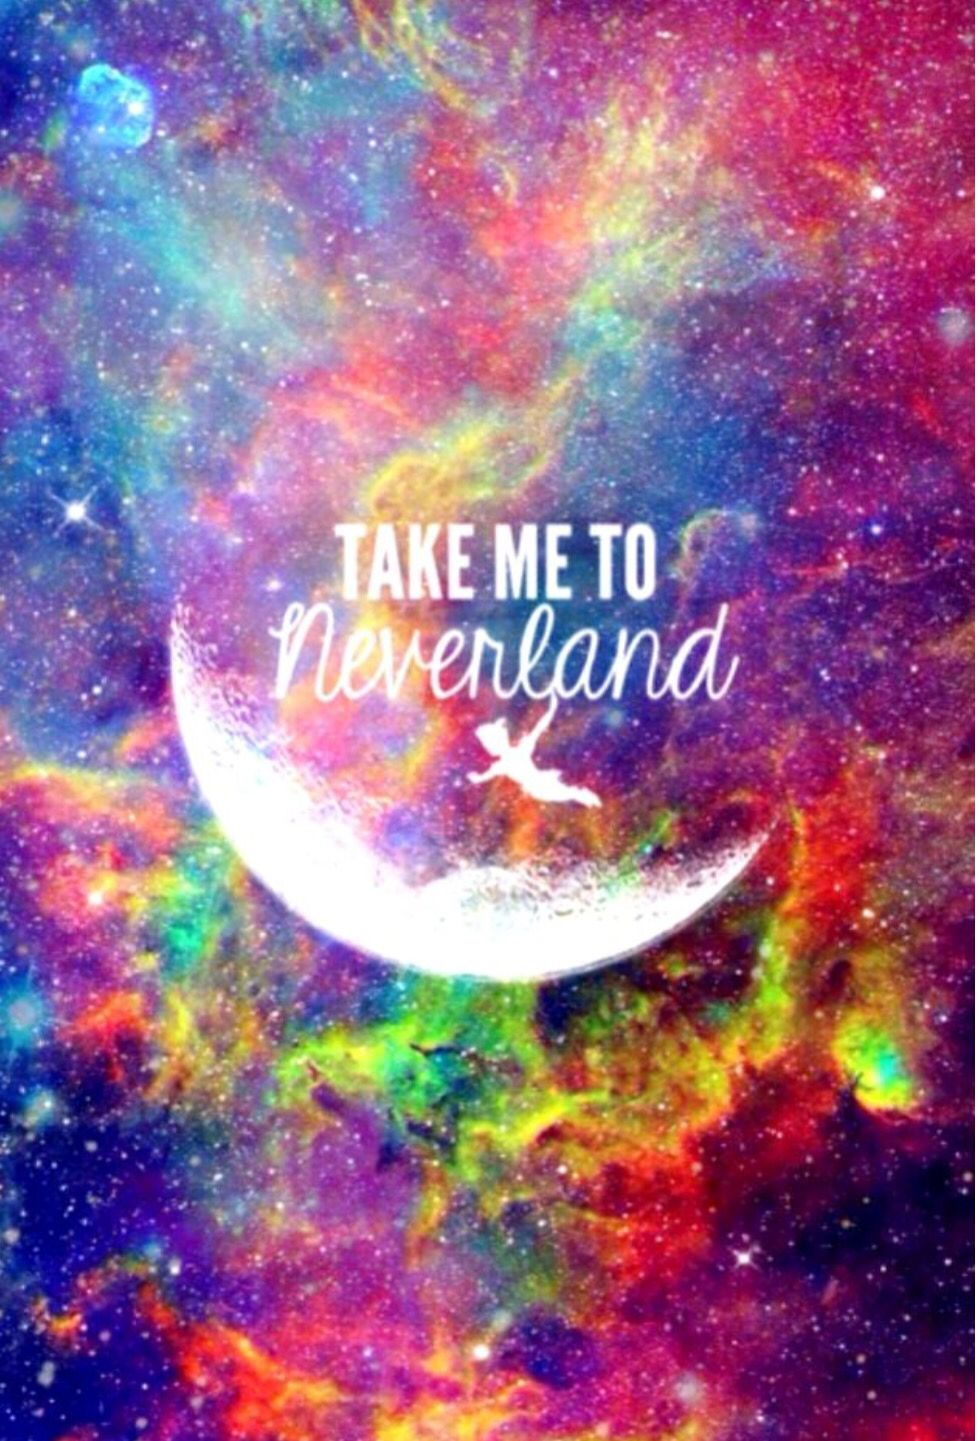 Take Me To Neverland Wallpaper Listen To The Song Neverland By